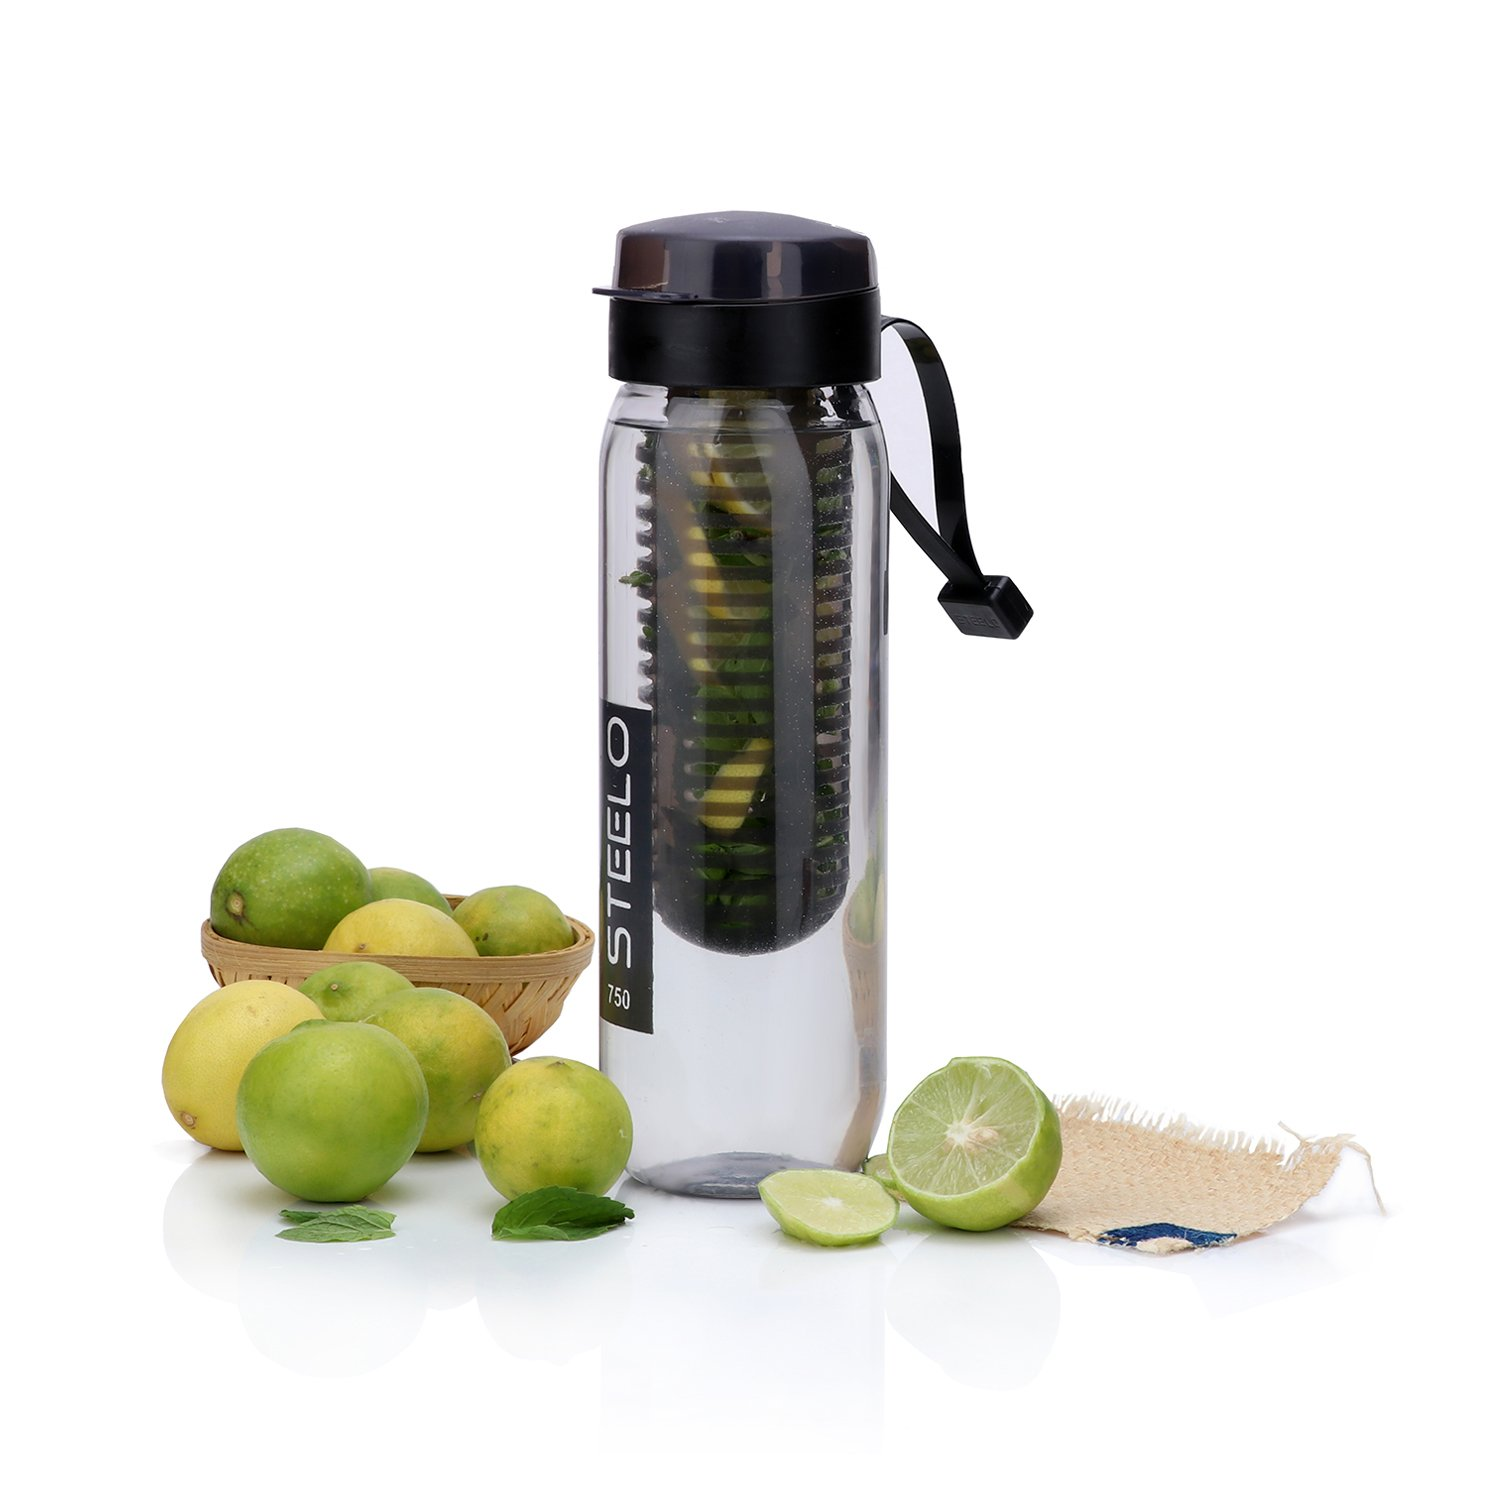 Steelo Plastic Fruit Infuser Bottle, 700ml, Black